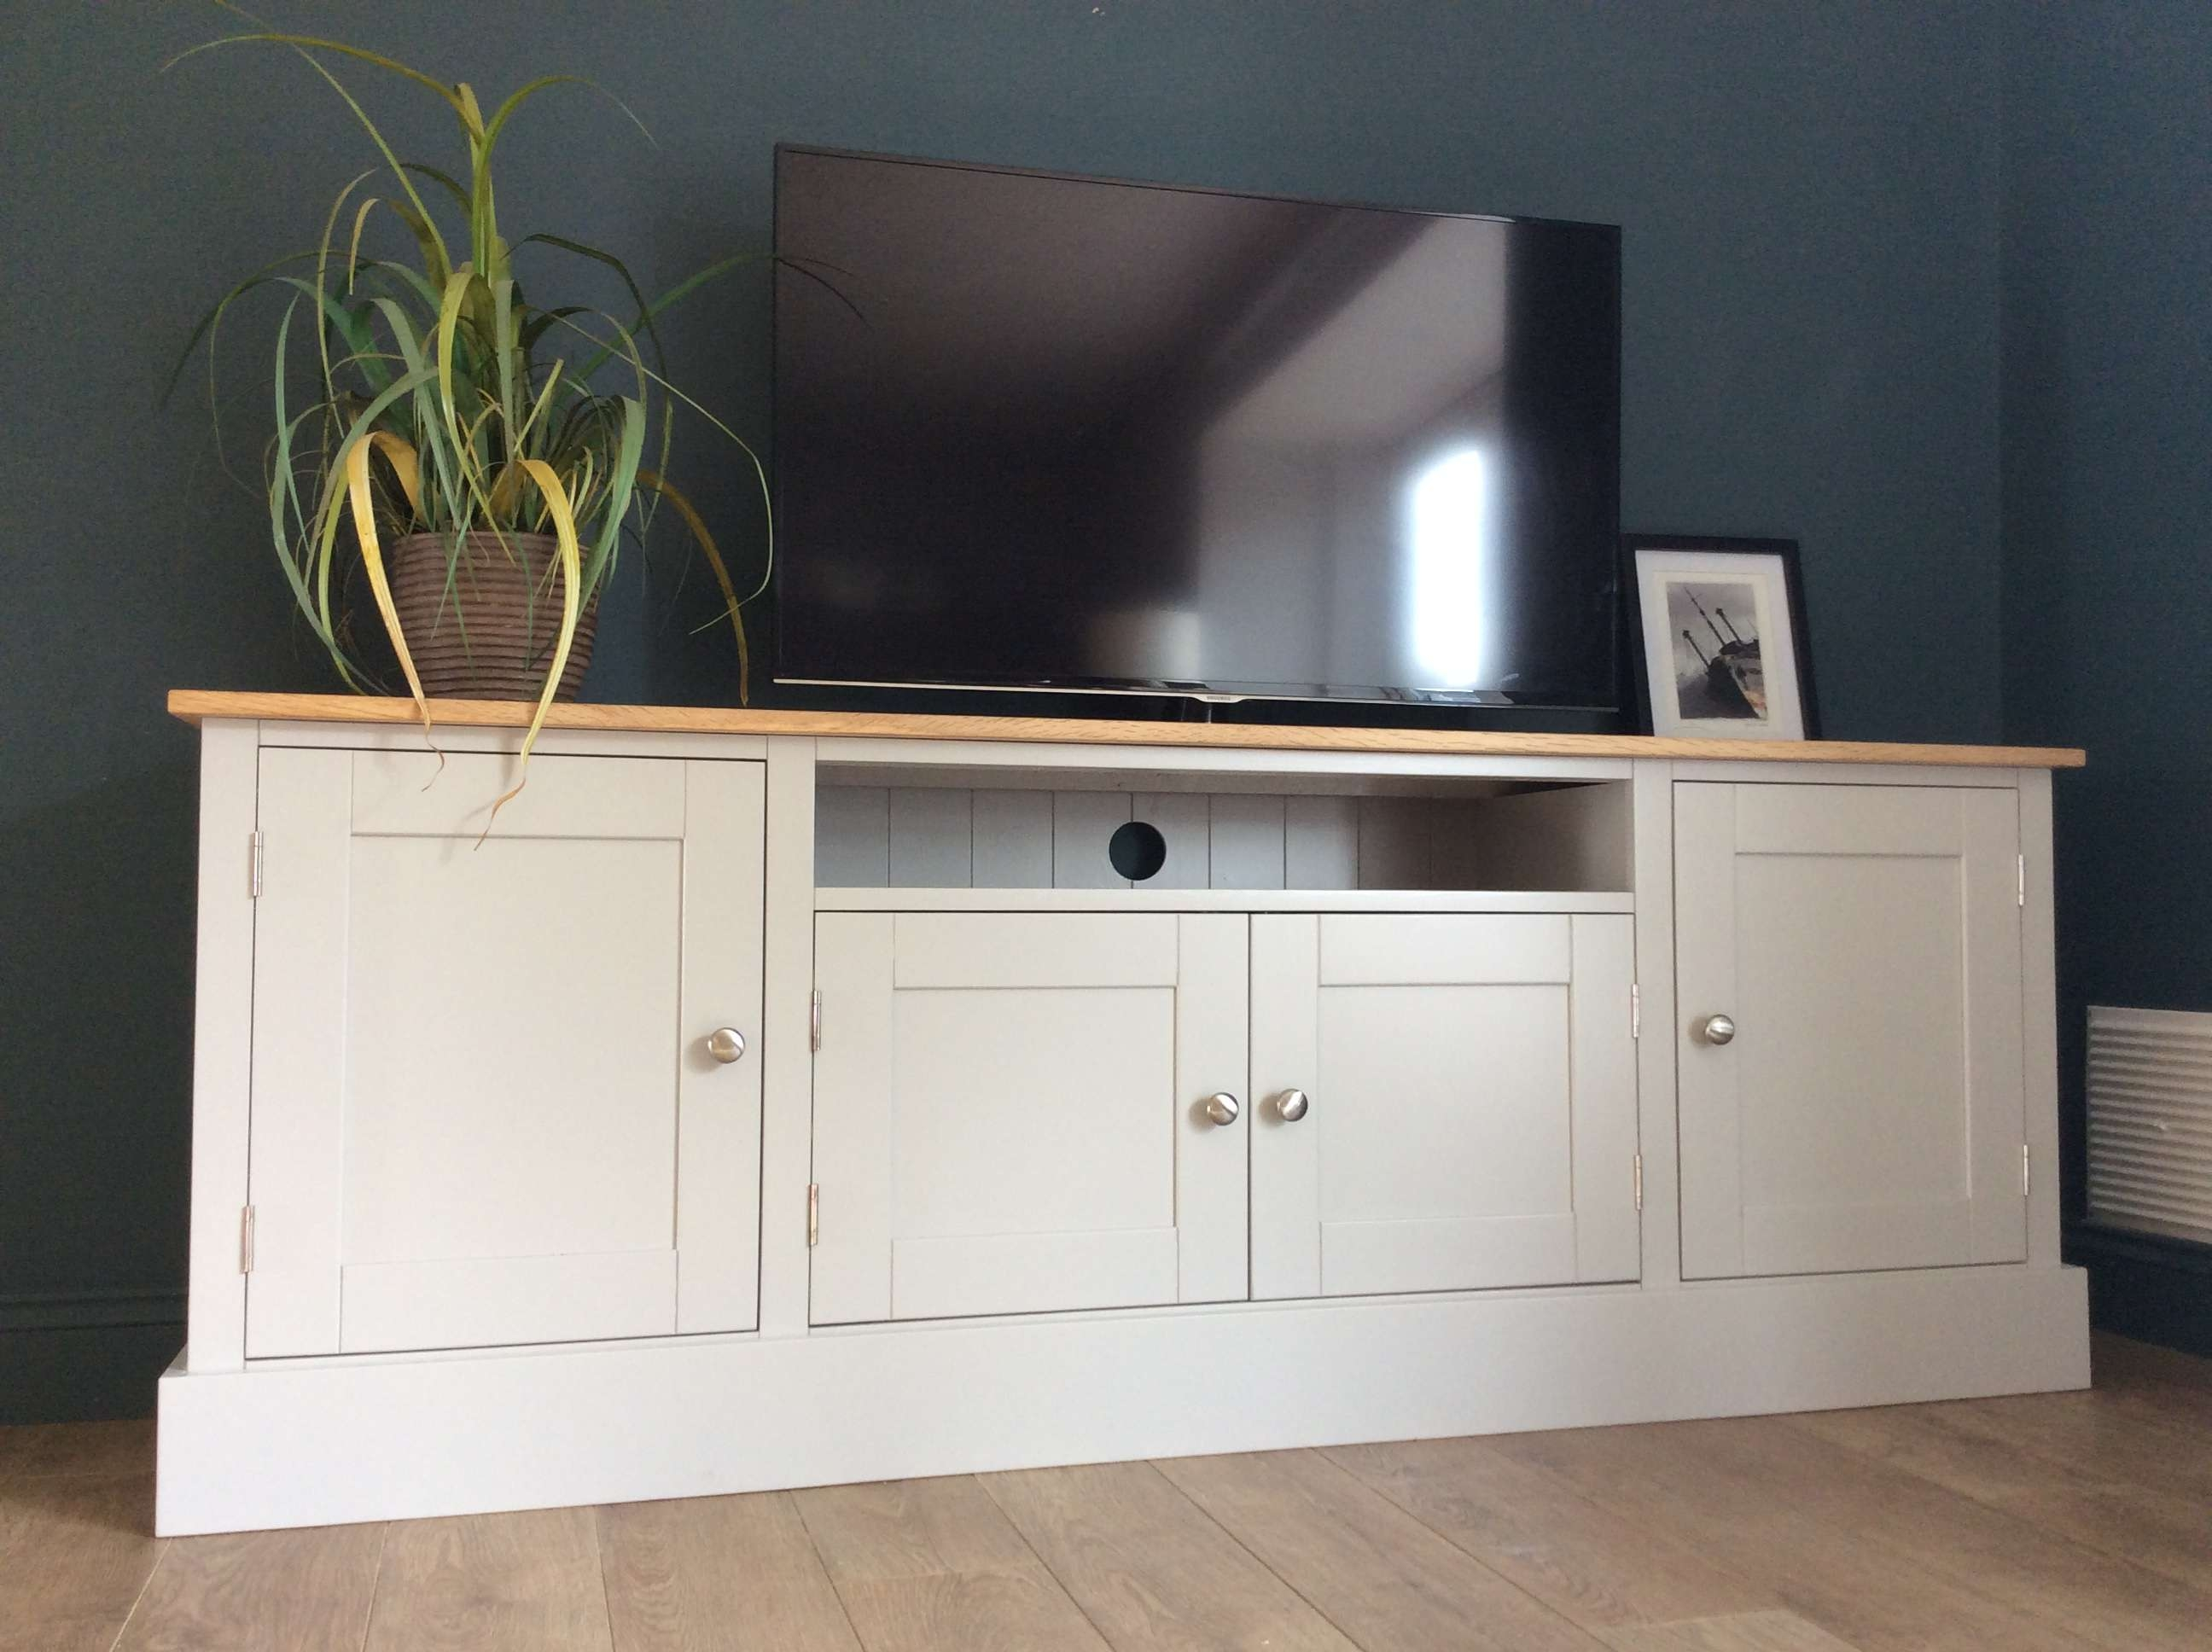 6ft Solid Pine & Oak Tv Cabinet – Nest At Number 20 With Solid Pine Tv Cabinets (View 15 of 20)